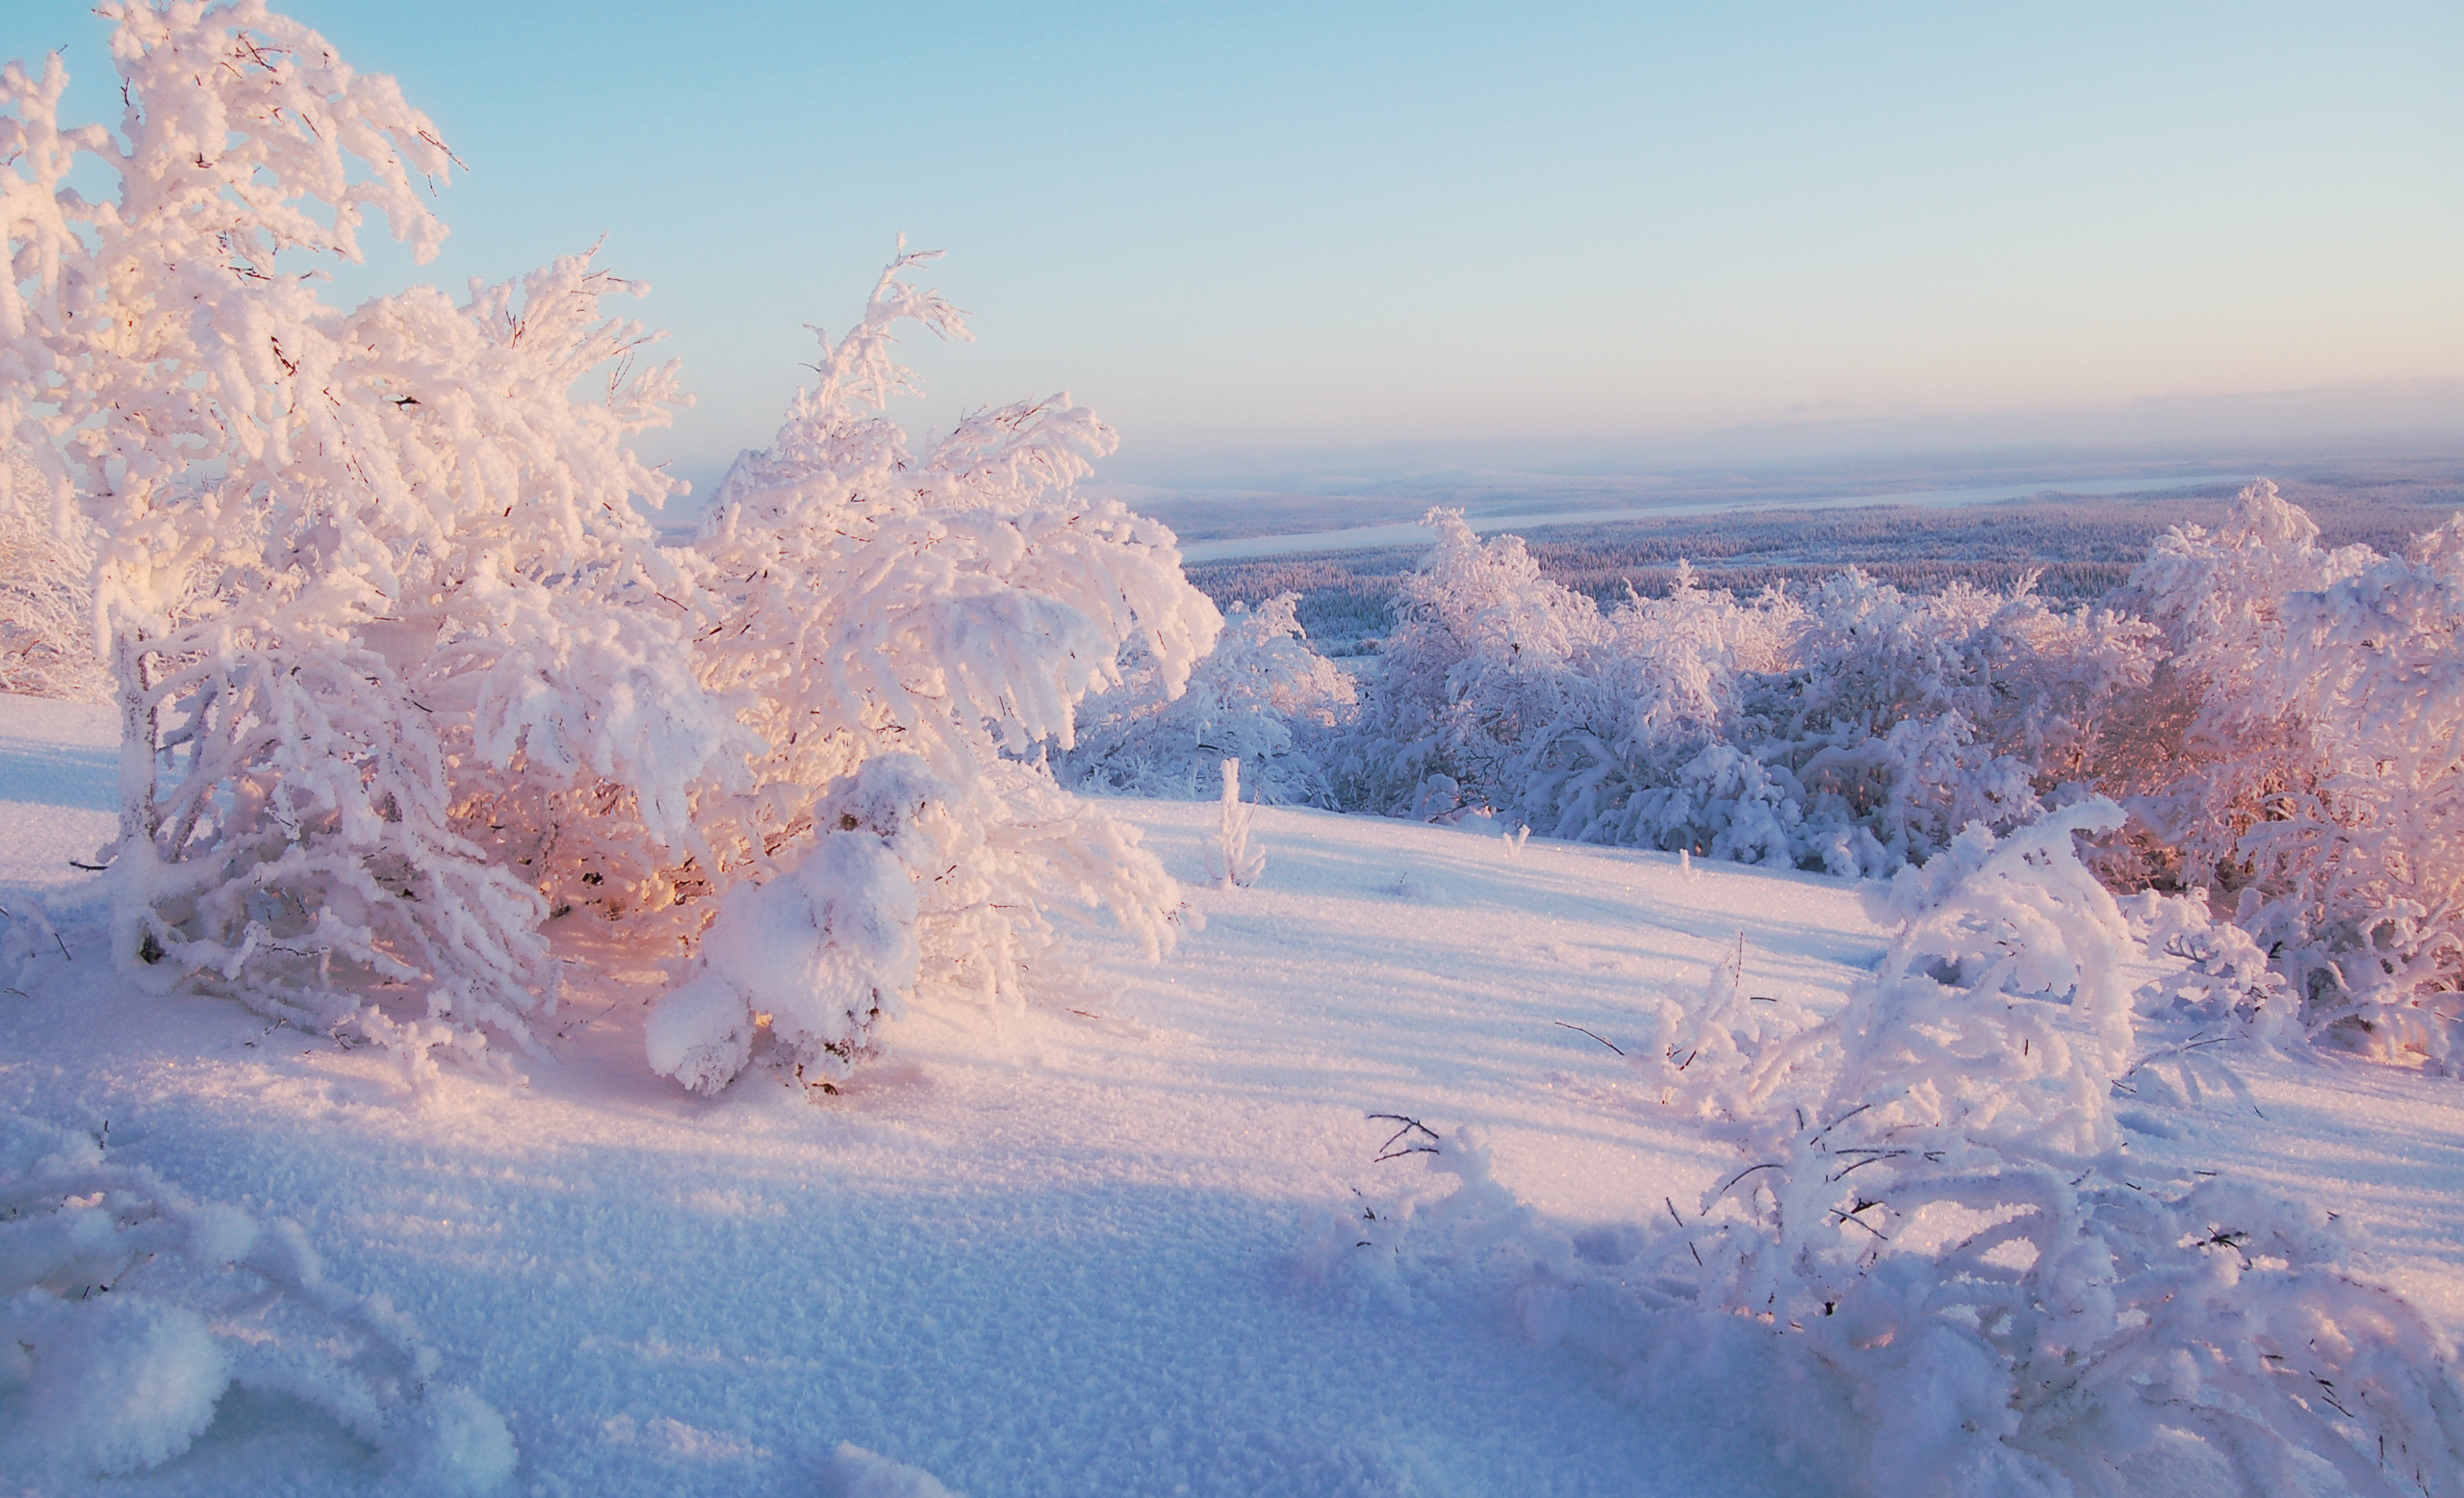 43019 download wallpaper Landscape, Winter, Nature screensavers and pictures for free